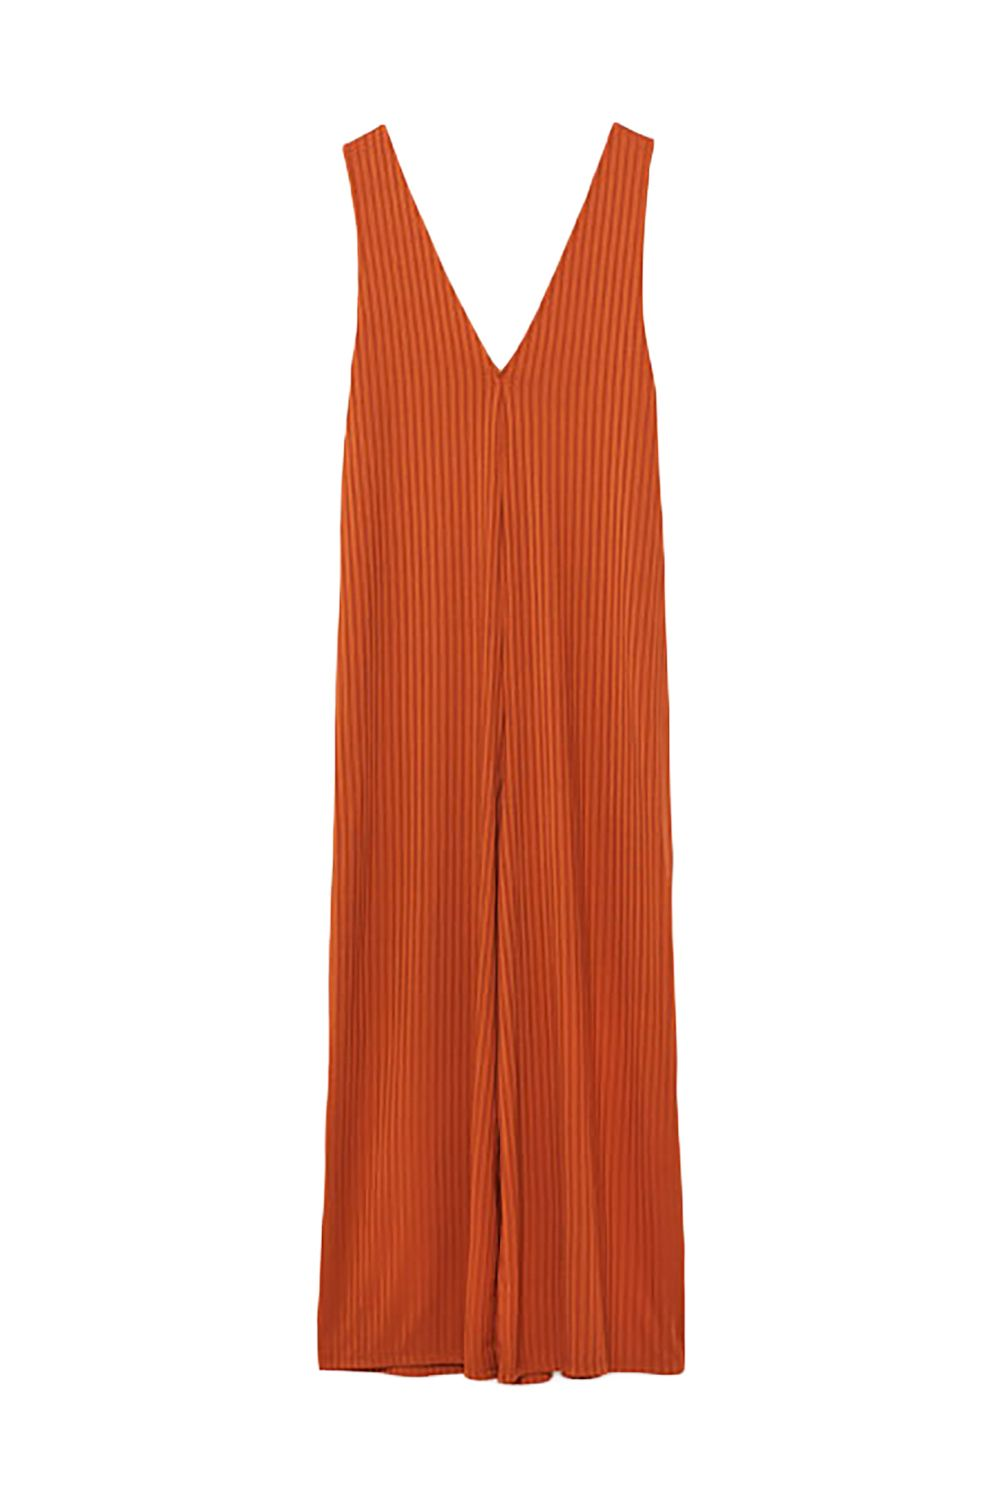 "<p>A classic v-neck jumpsuit that easily transitions from breezy summer attire to rock-with-a-turtleneck fall bliss. </p><p><strong></strong></p><p><strong>Strappy Jumpsuit, $26&#x3B; <a href=""http://www.zara.com/us/en/trf/new-in/strappy-jumpsuit-c840006p3929008.html"" target=""_blank"">zara.com</a>. </strong></p>"